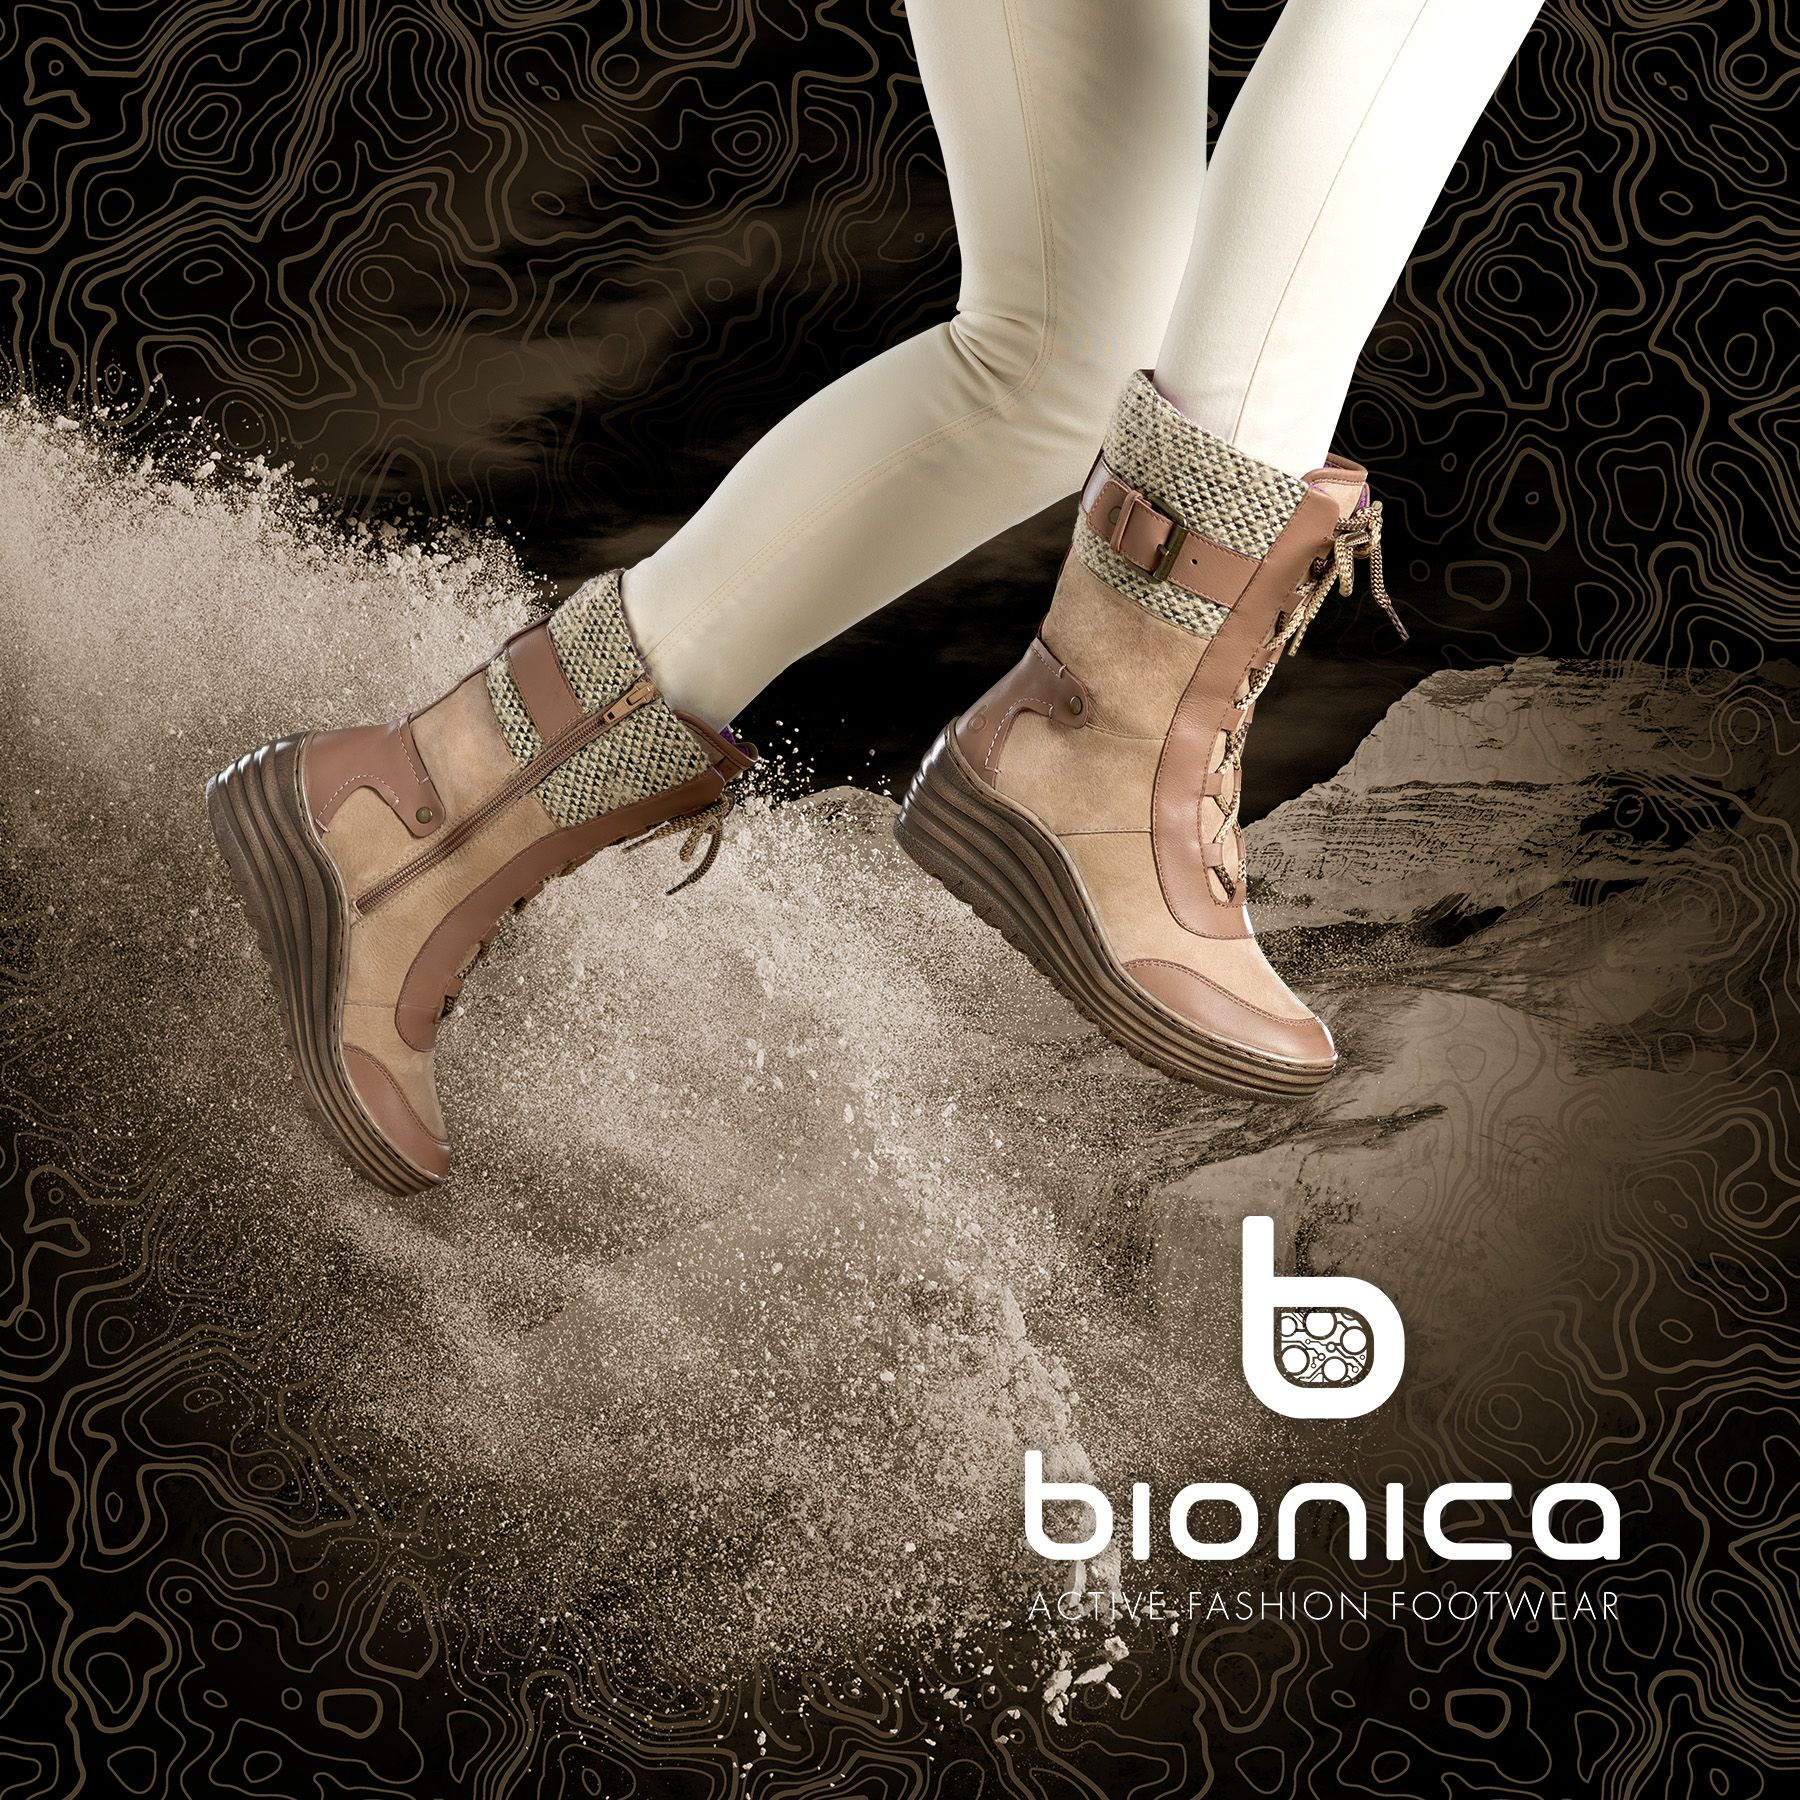 Bionica Garland baywater Fall shoes, Spring shoes